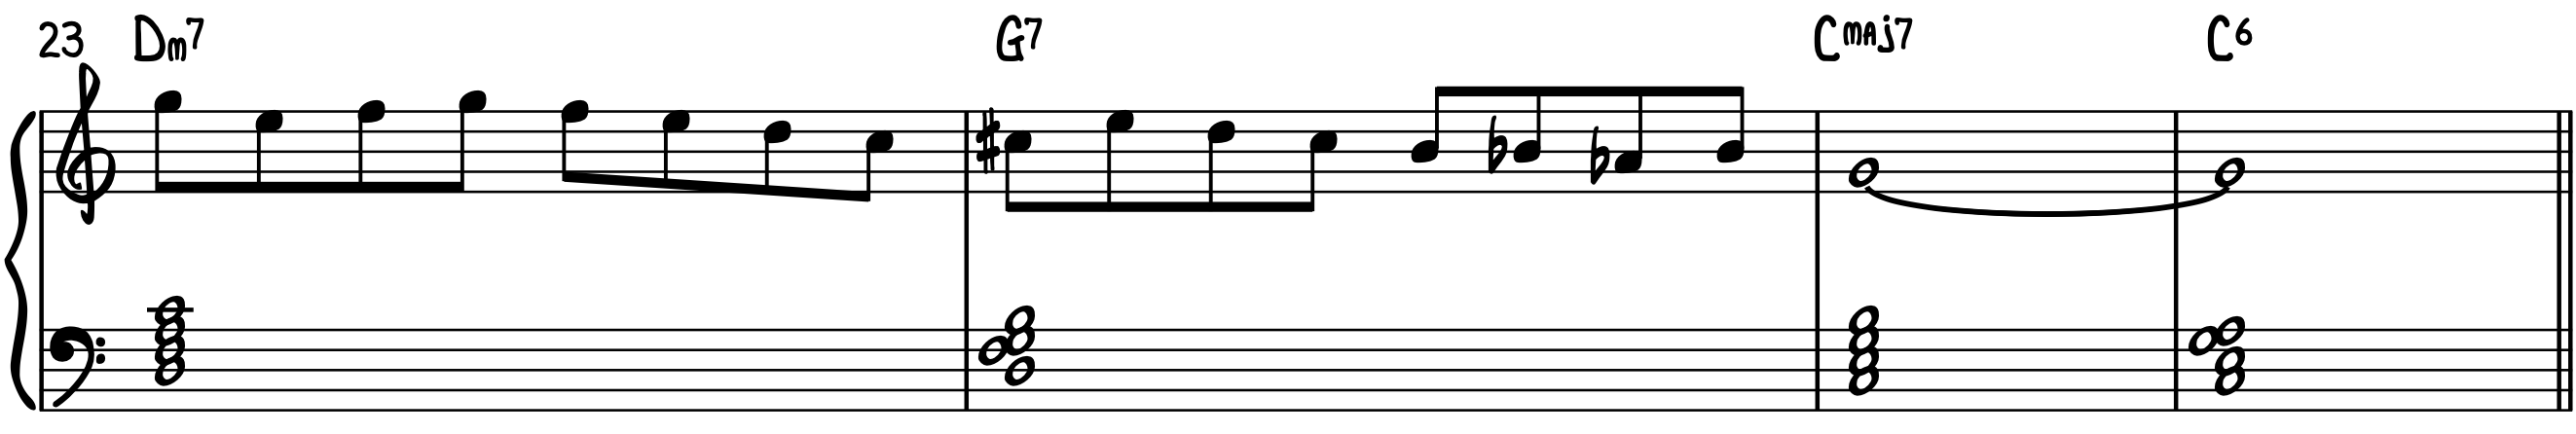 Improv Example 1 with the Dominant Diminished Scale jazz piano